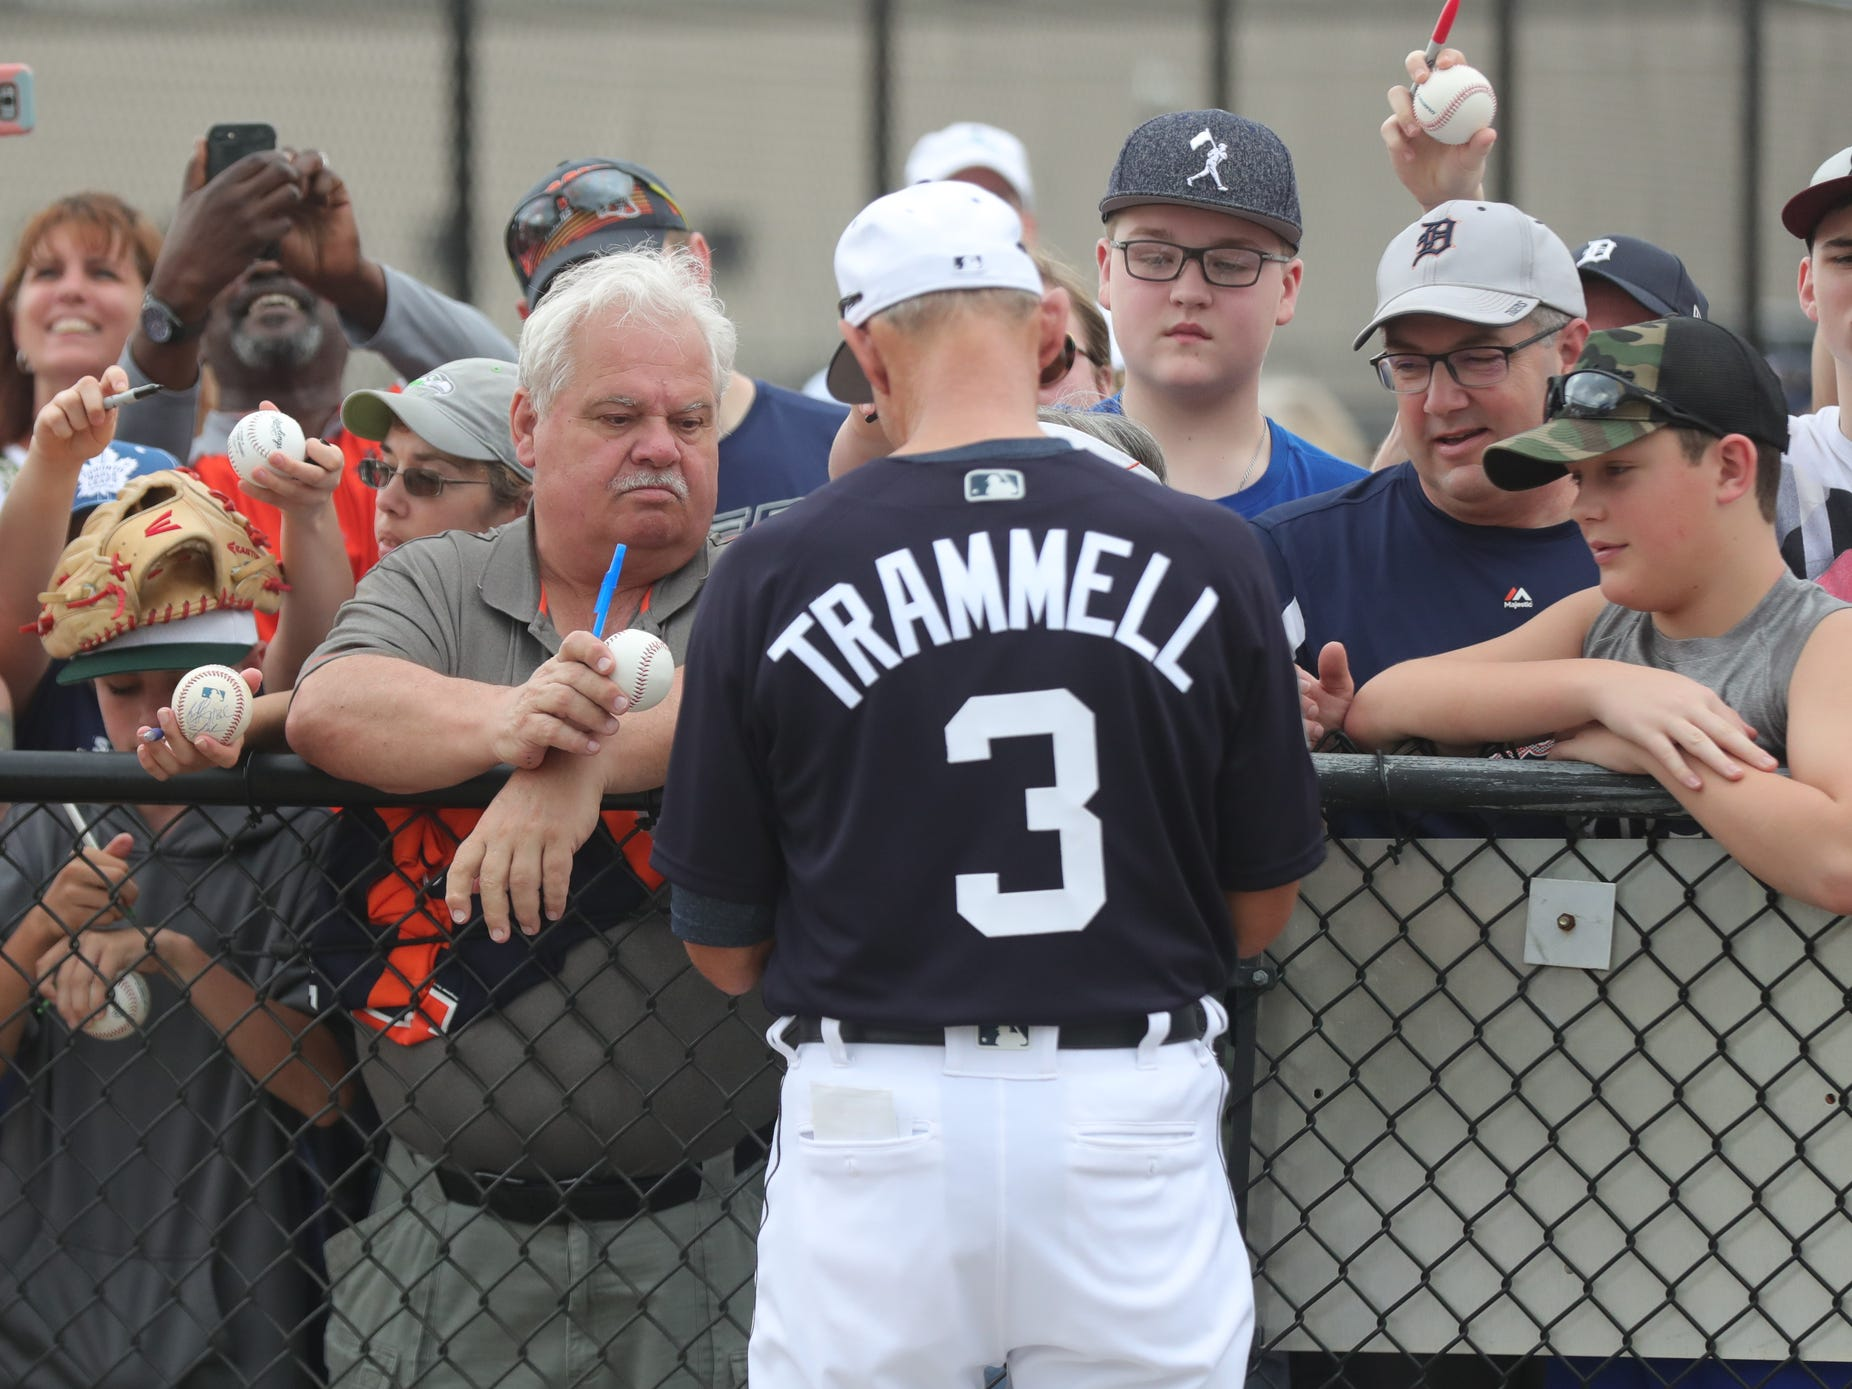 Tigers Hall of Famer Alan Trammell signs autographs for fans during the first full team spring training practice on Monday, Feb. 18, 2019, at Joker Marchant Stadium in Lakeland, Florida.